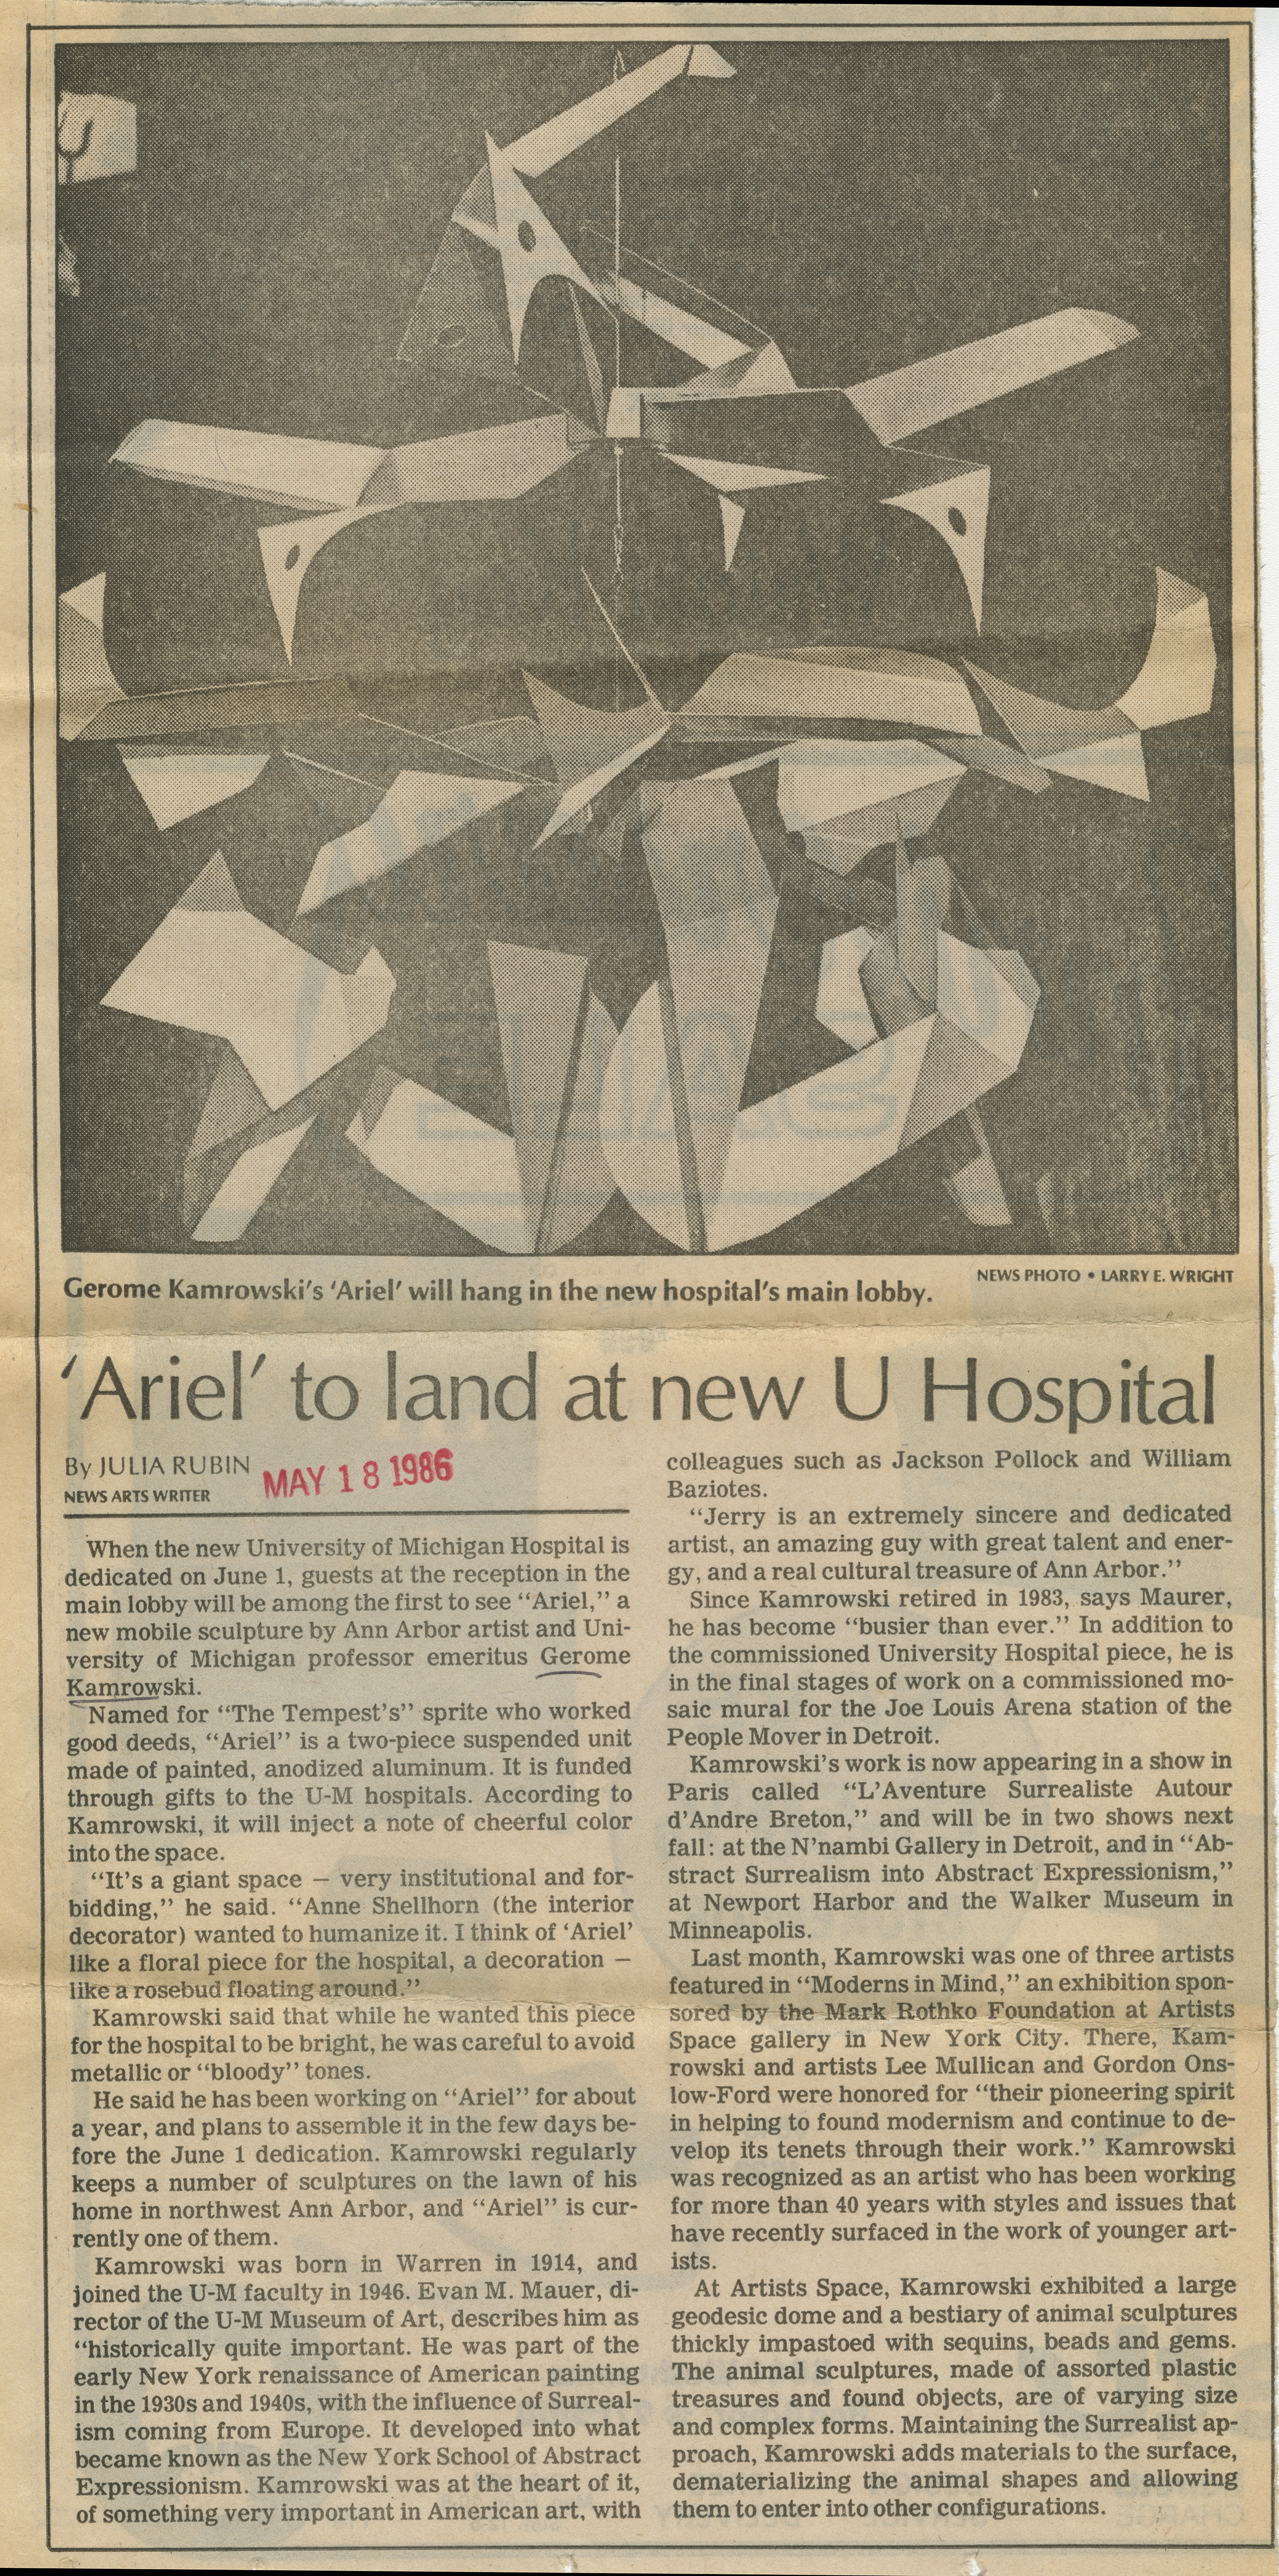 'Ariel' to land at new U Hospital image